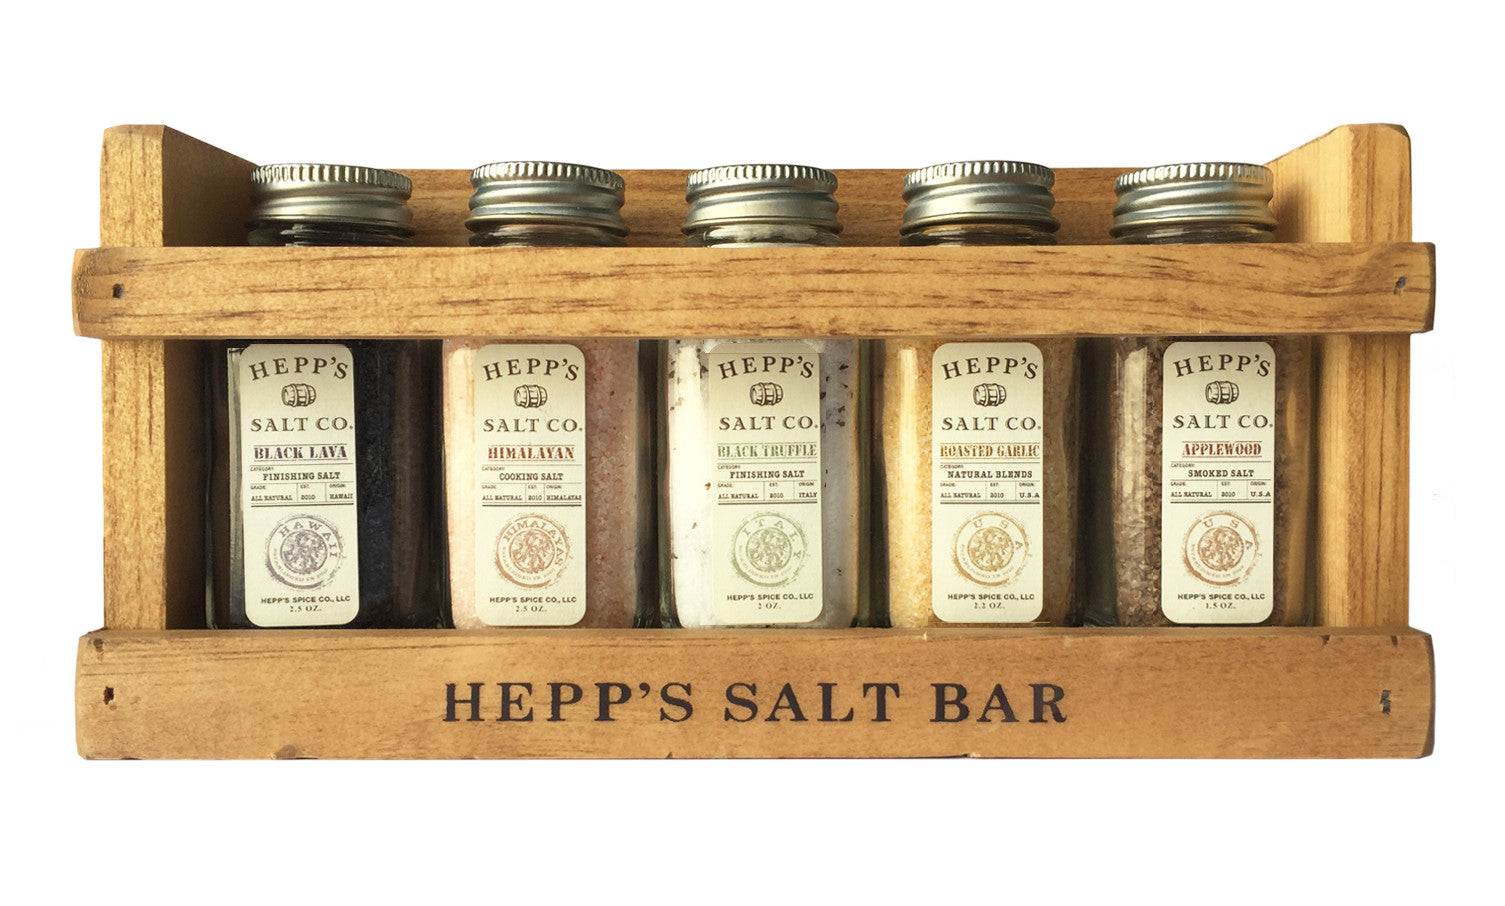 Chef's Collection Gift Set - HEPPS SALT CO.